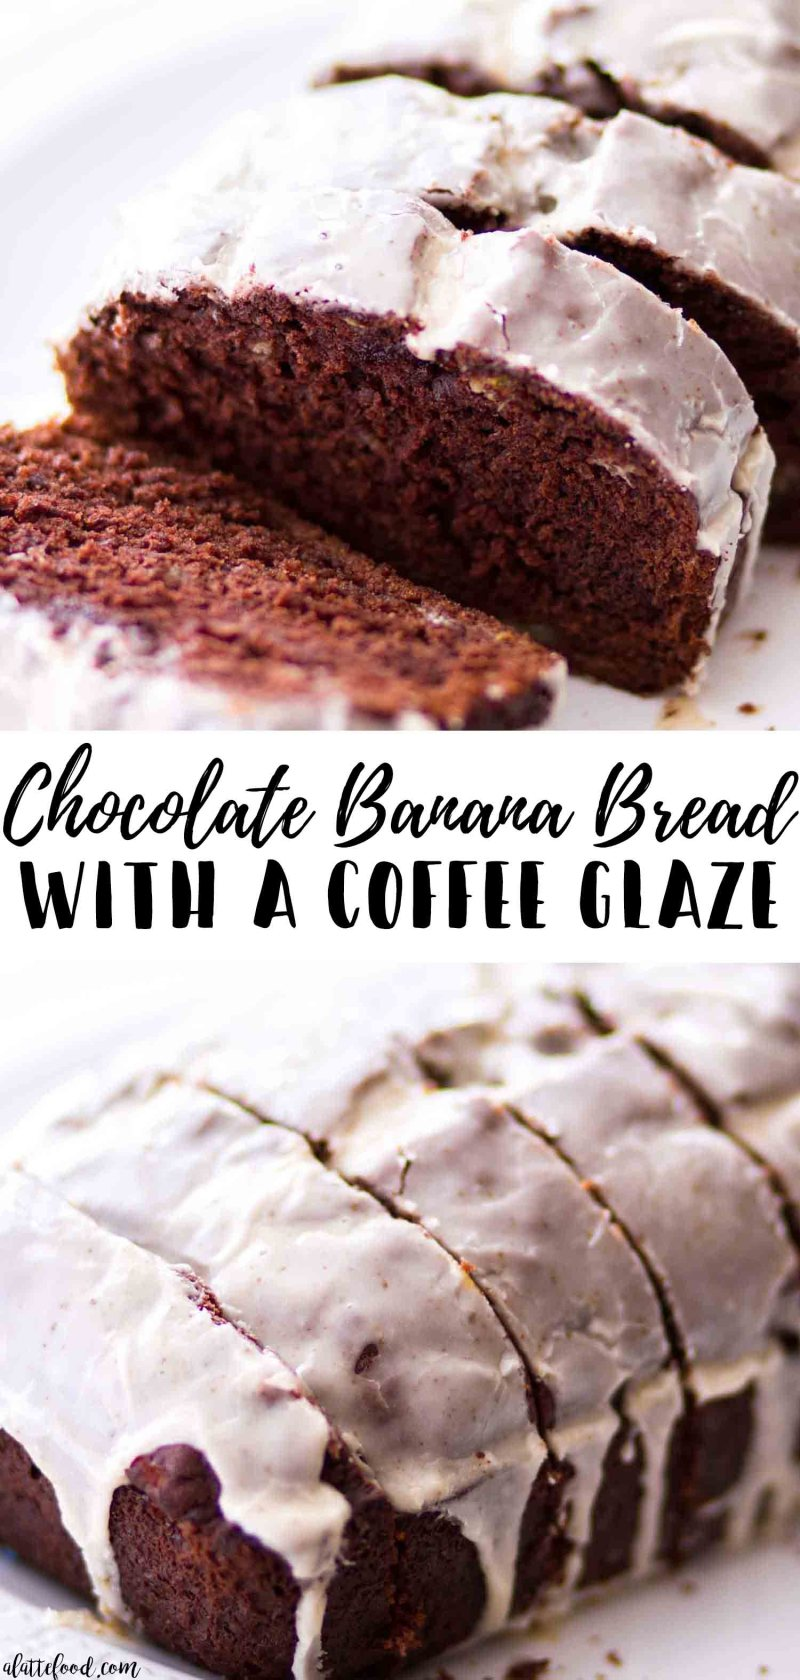 Easy chocolate banana bread with a coffee glaze